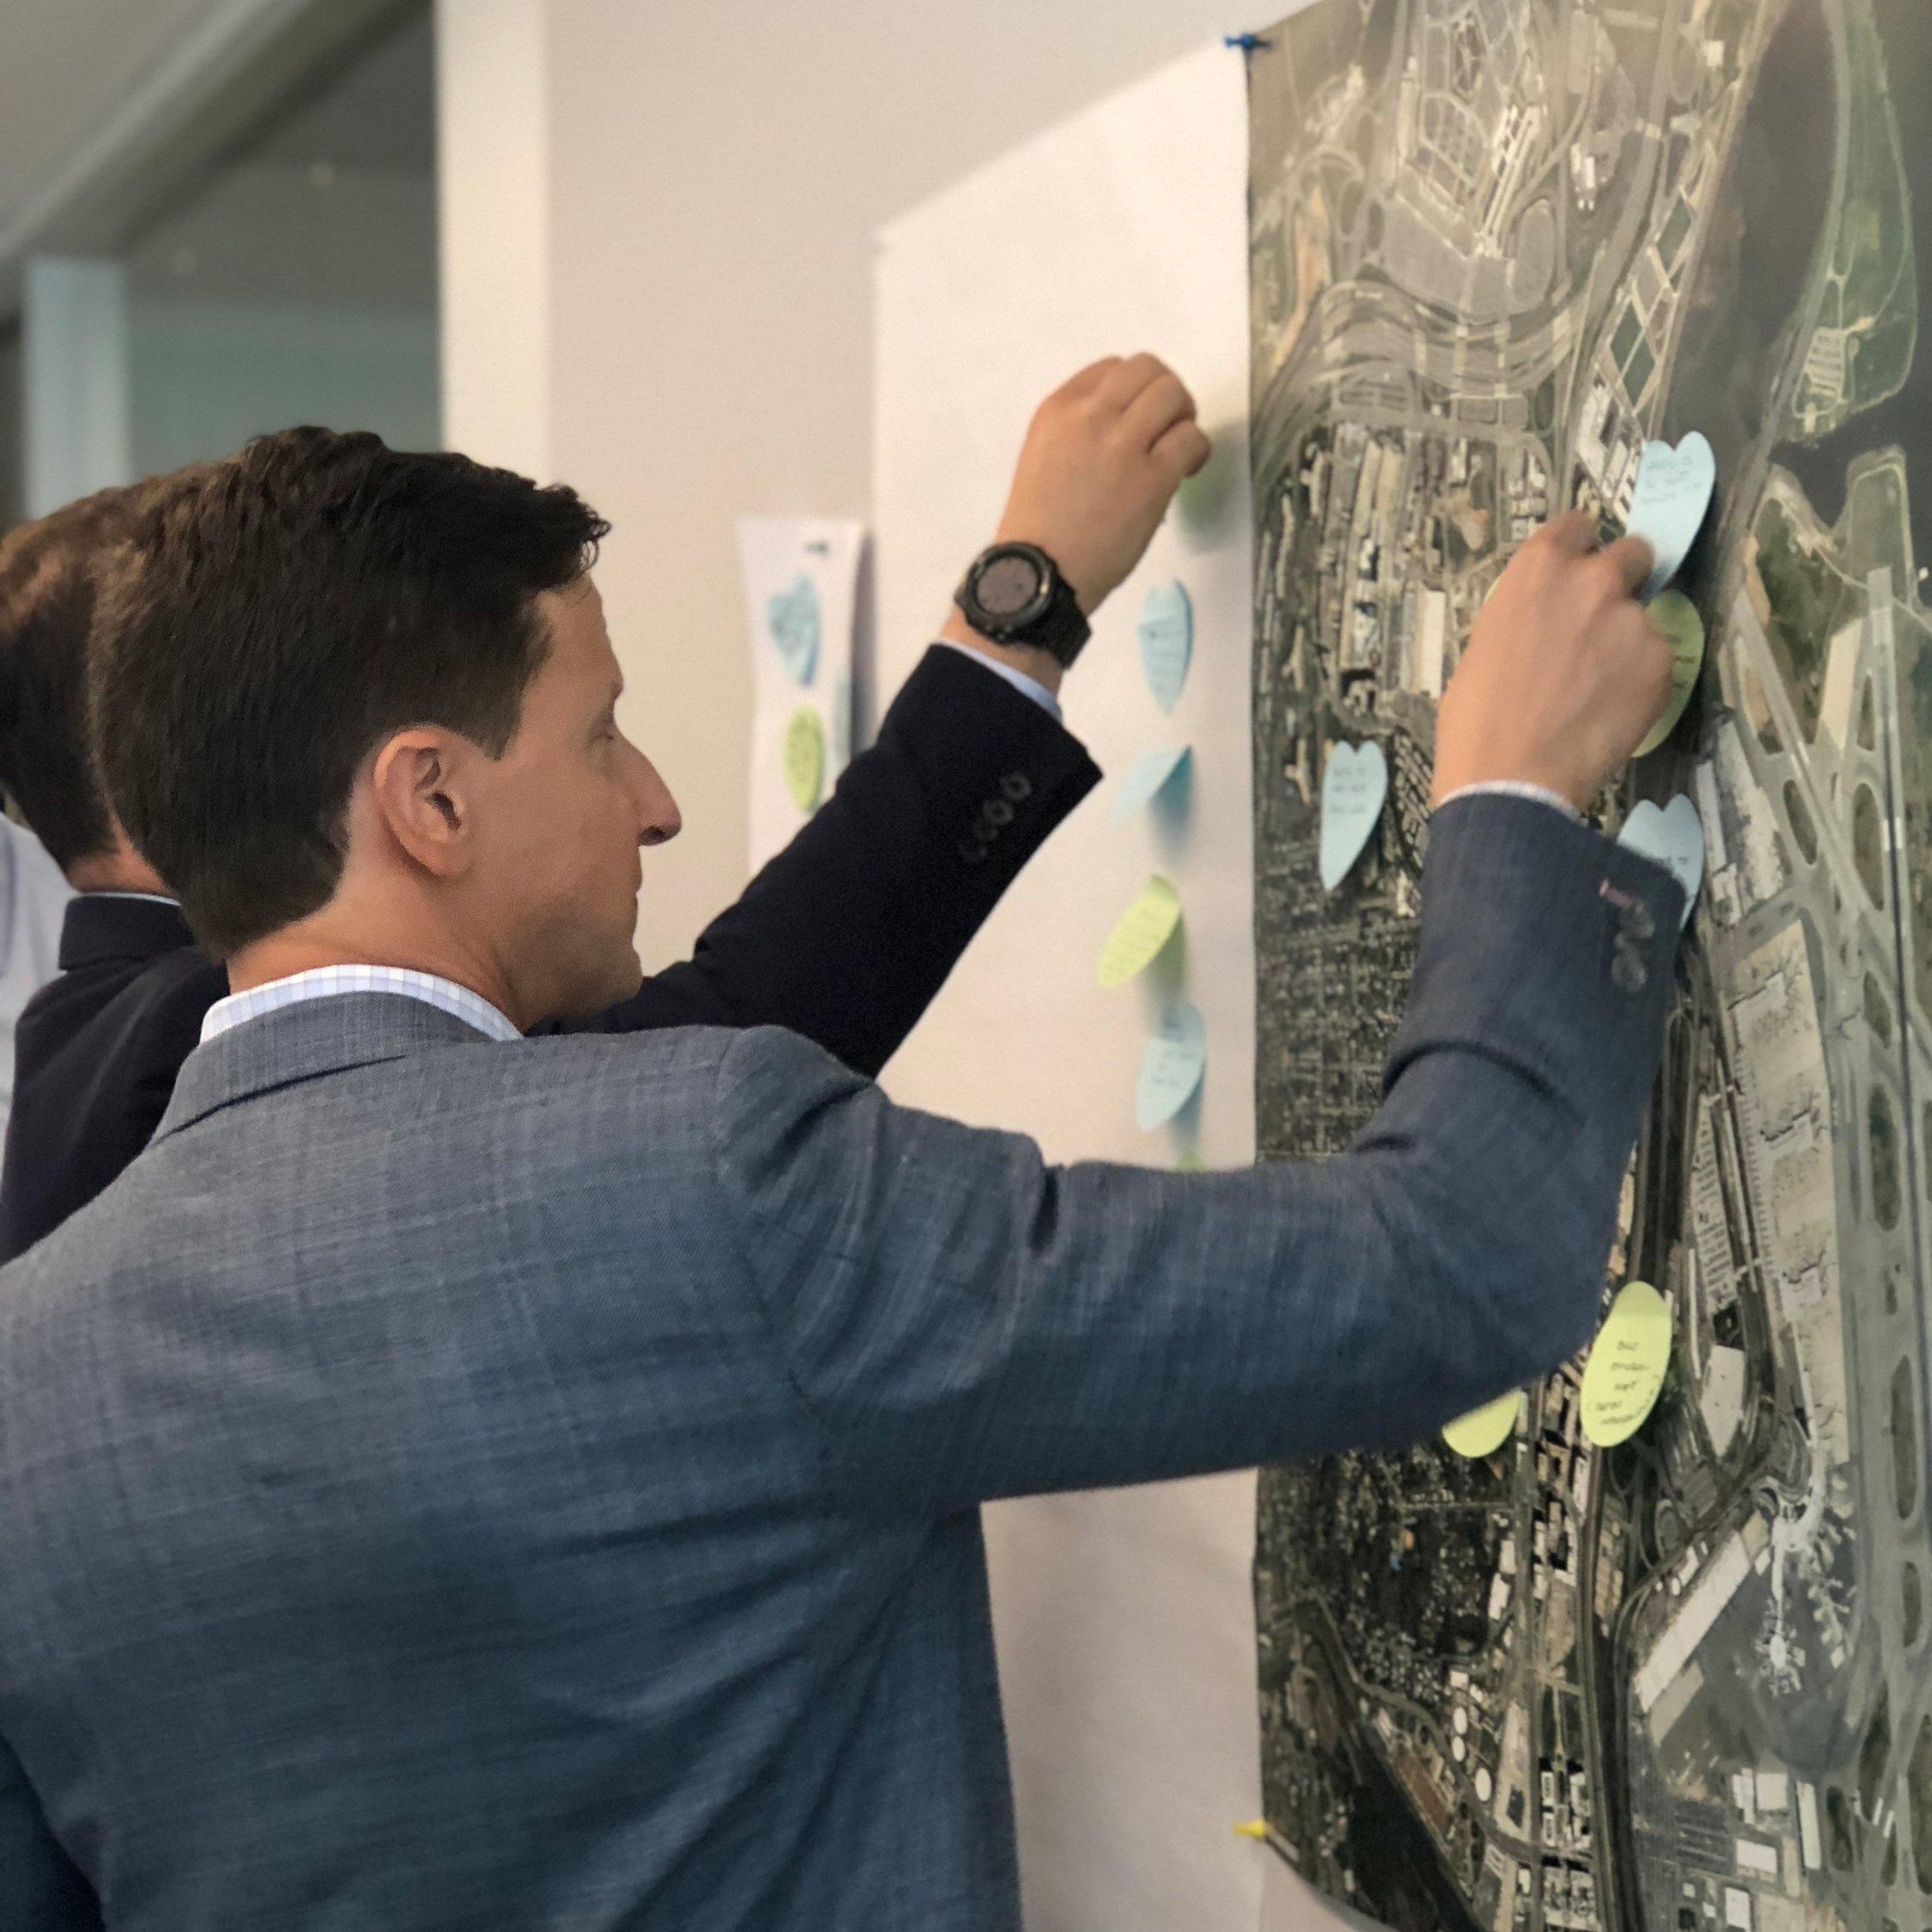 Strategic Planning - Providing structure and leadership to a variety of collaborative strategic planning processes, engaging multiple stakeholders resulting in implemented action agendas for both city areas and organizations.